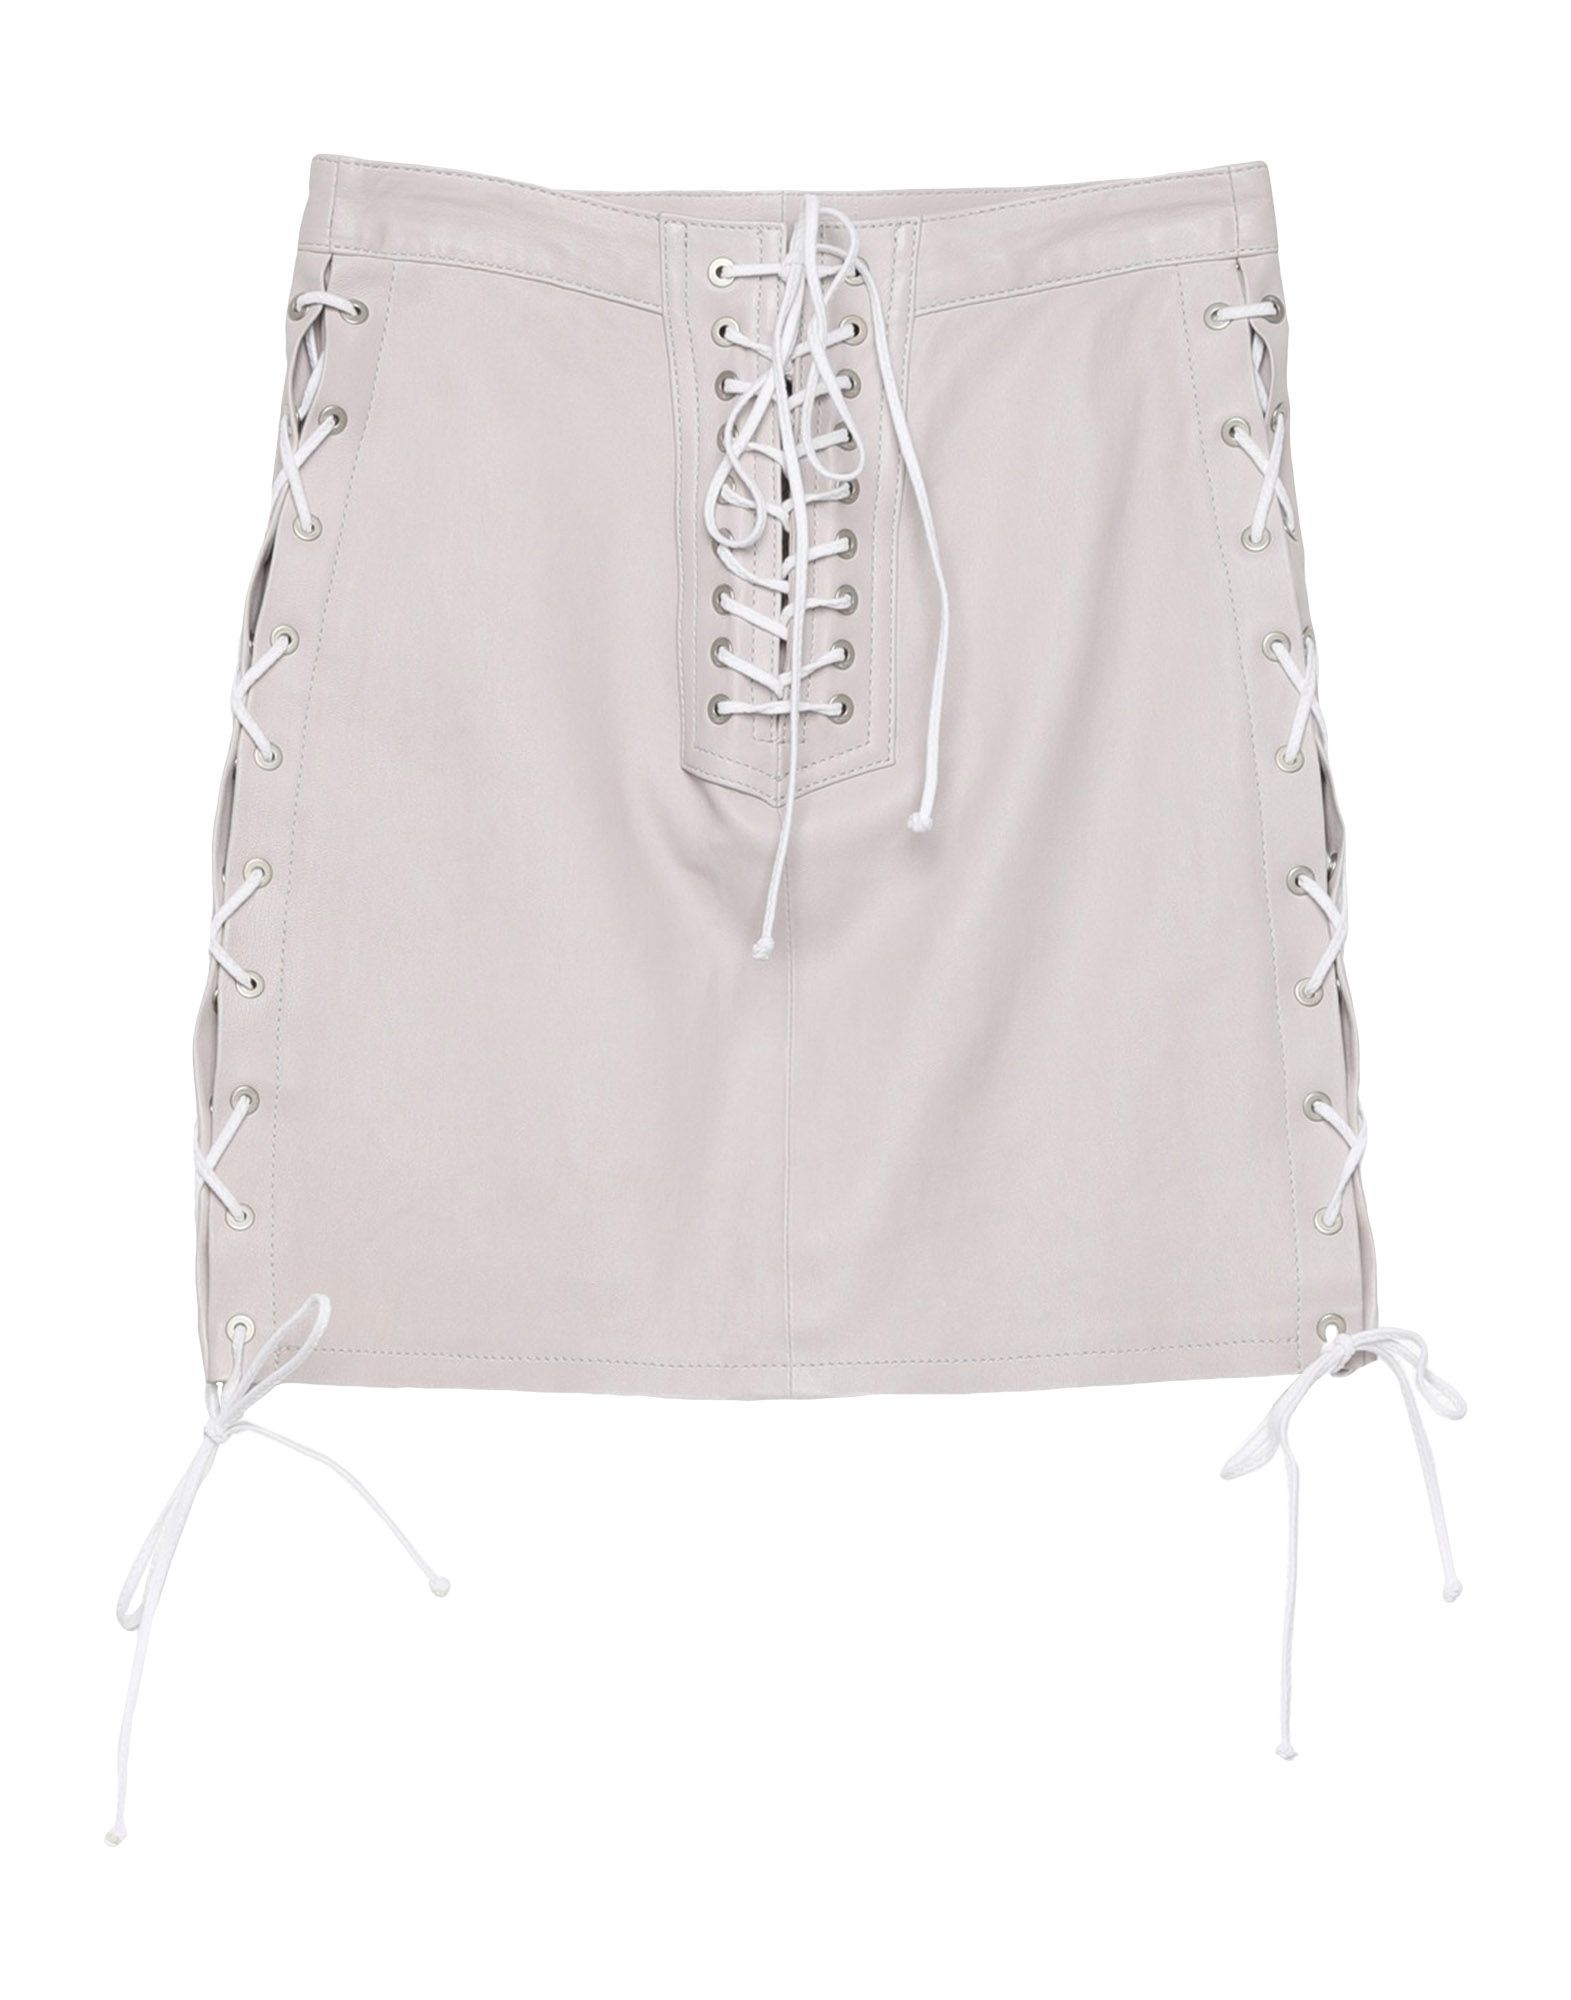 Ben Taverniti Unravel Project BEN TAVERNITI™ UNRAVEL PROJECT MINI SKIRTS